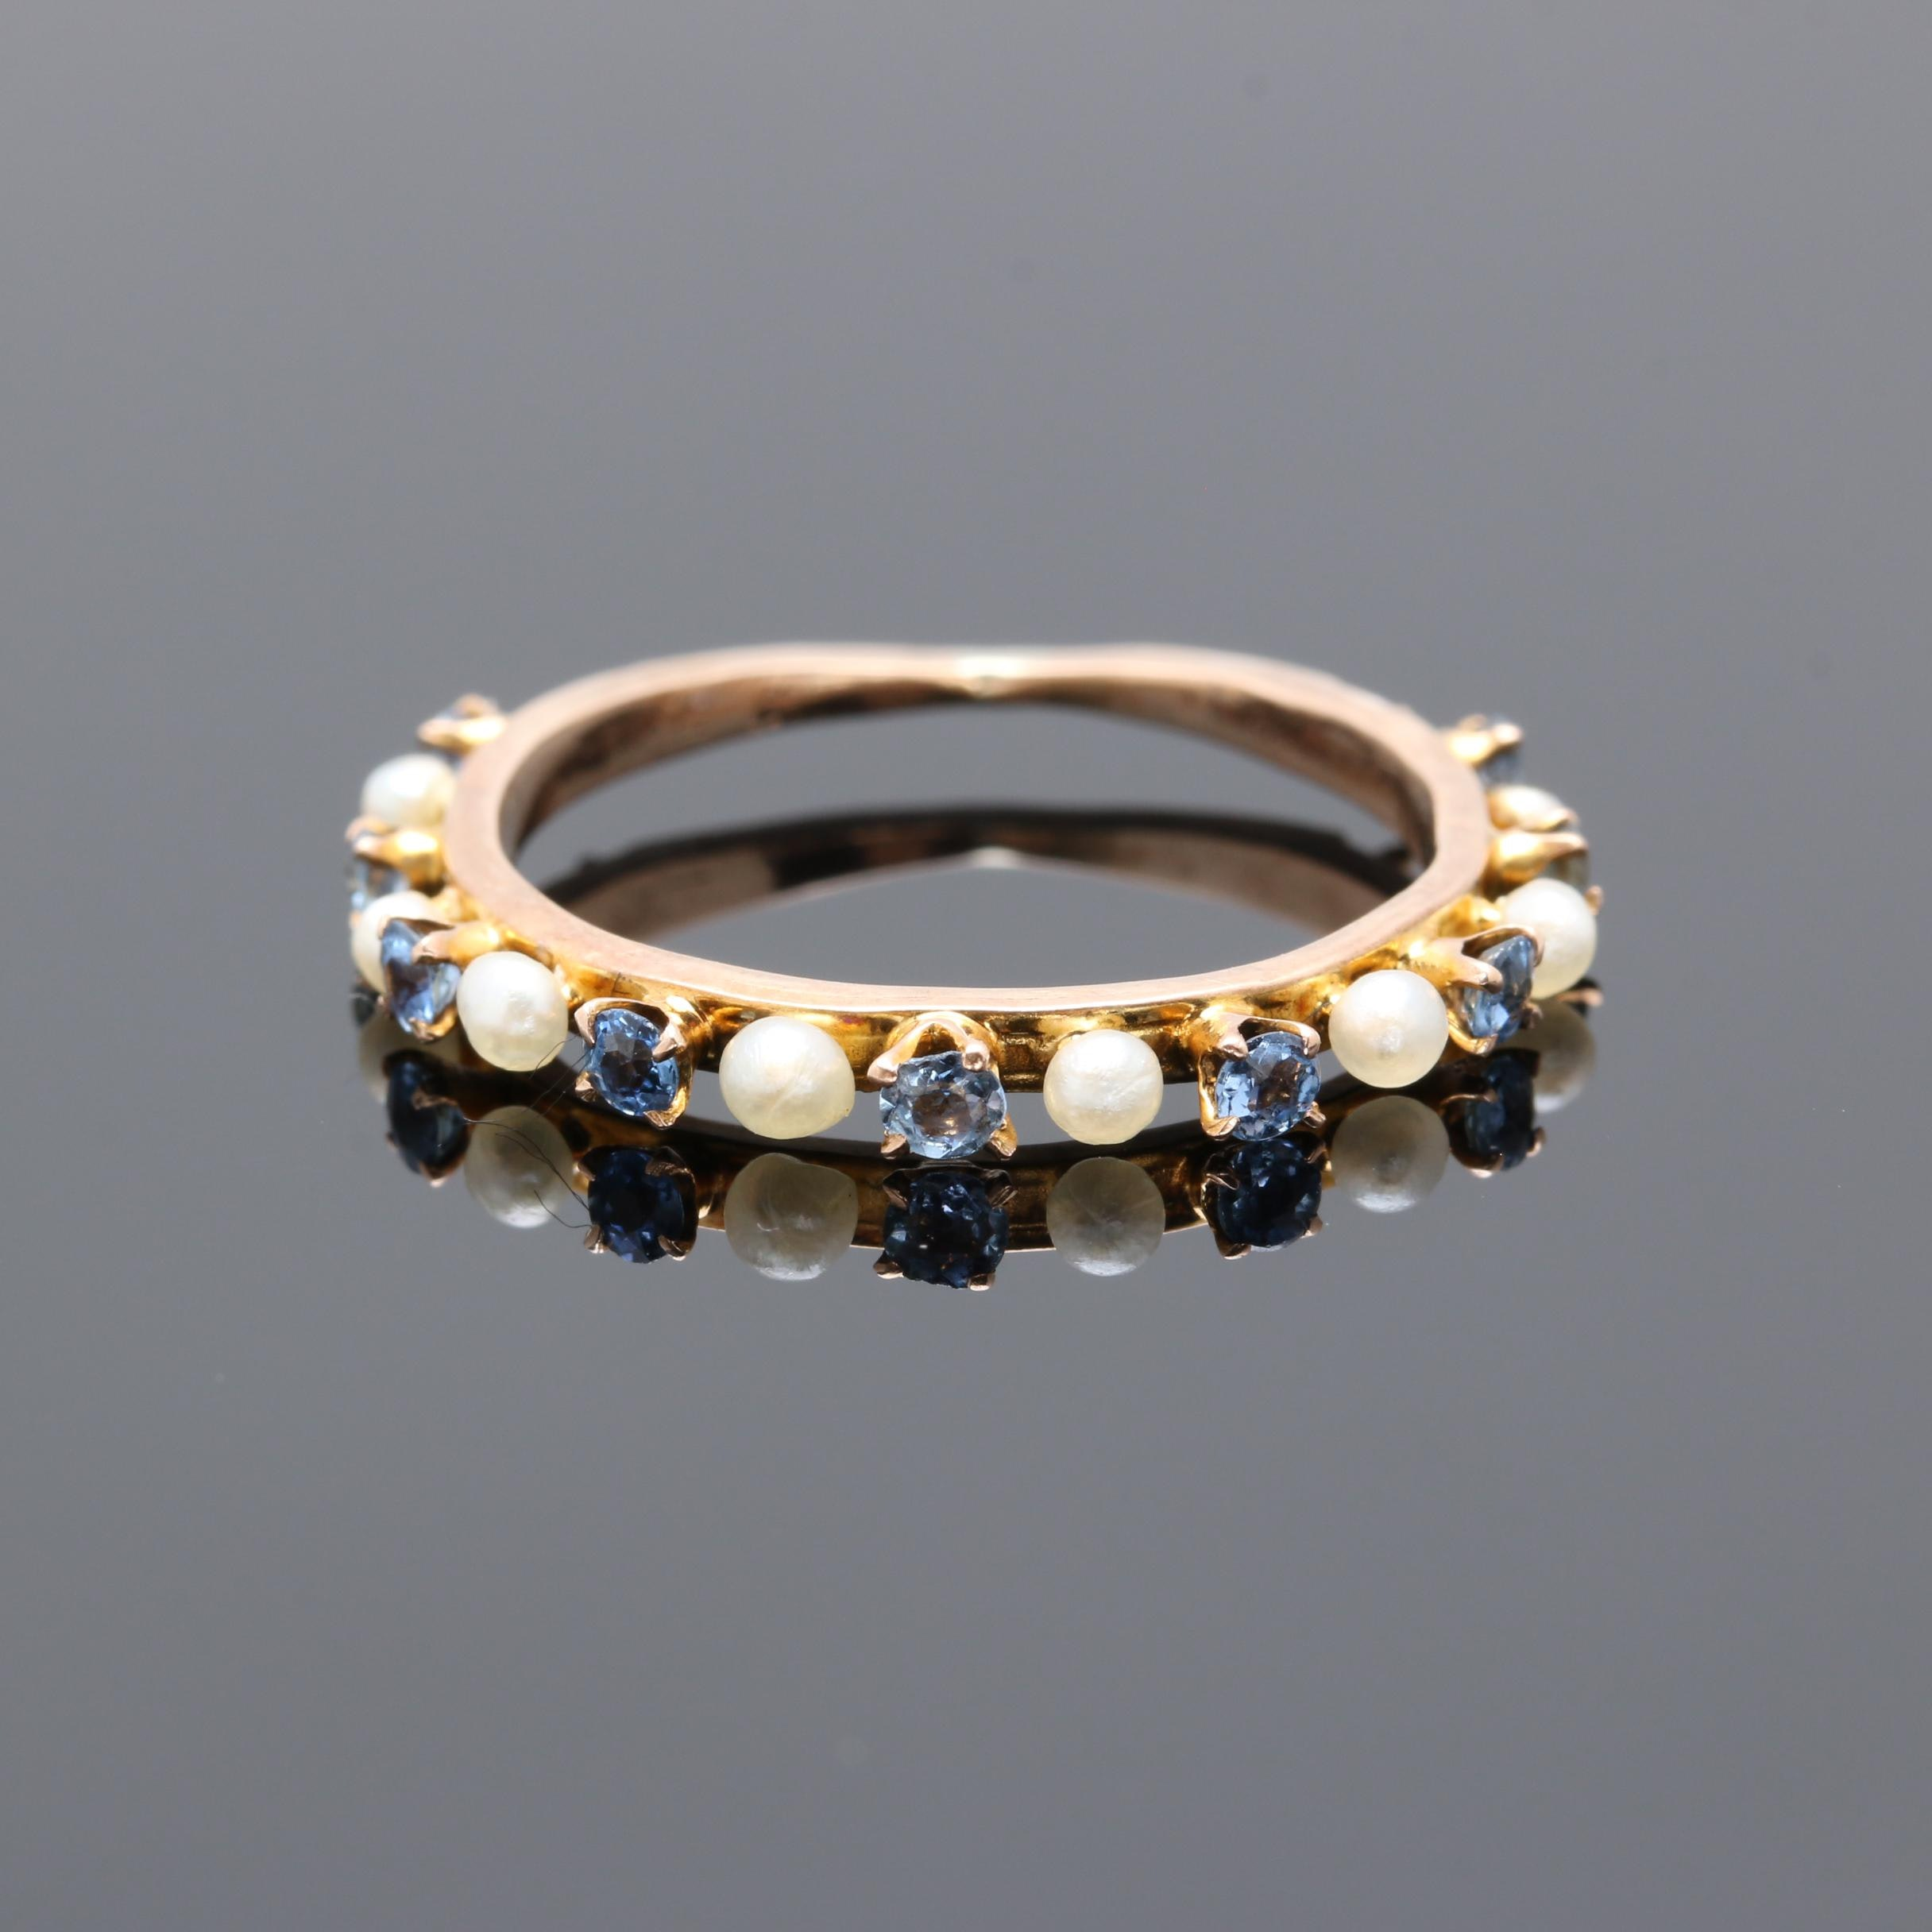 10K Yellow Gold Blue Sapphire and Cultured Pearl Ring